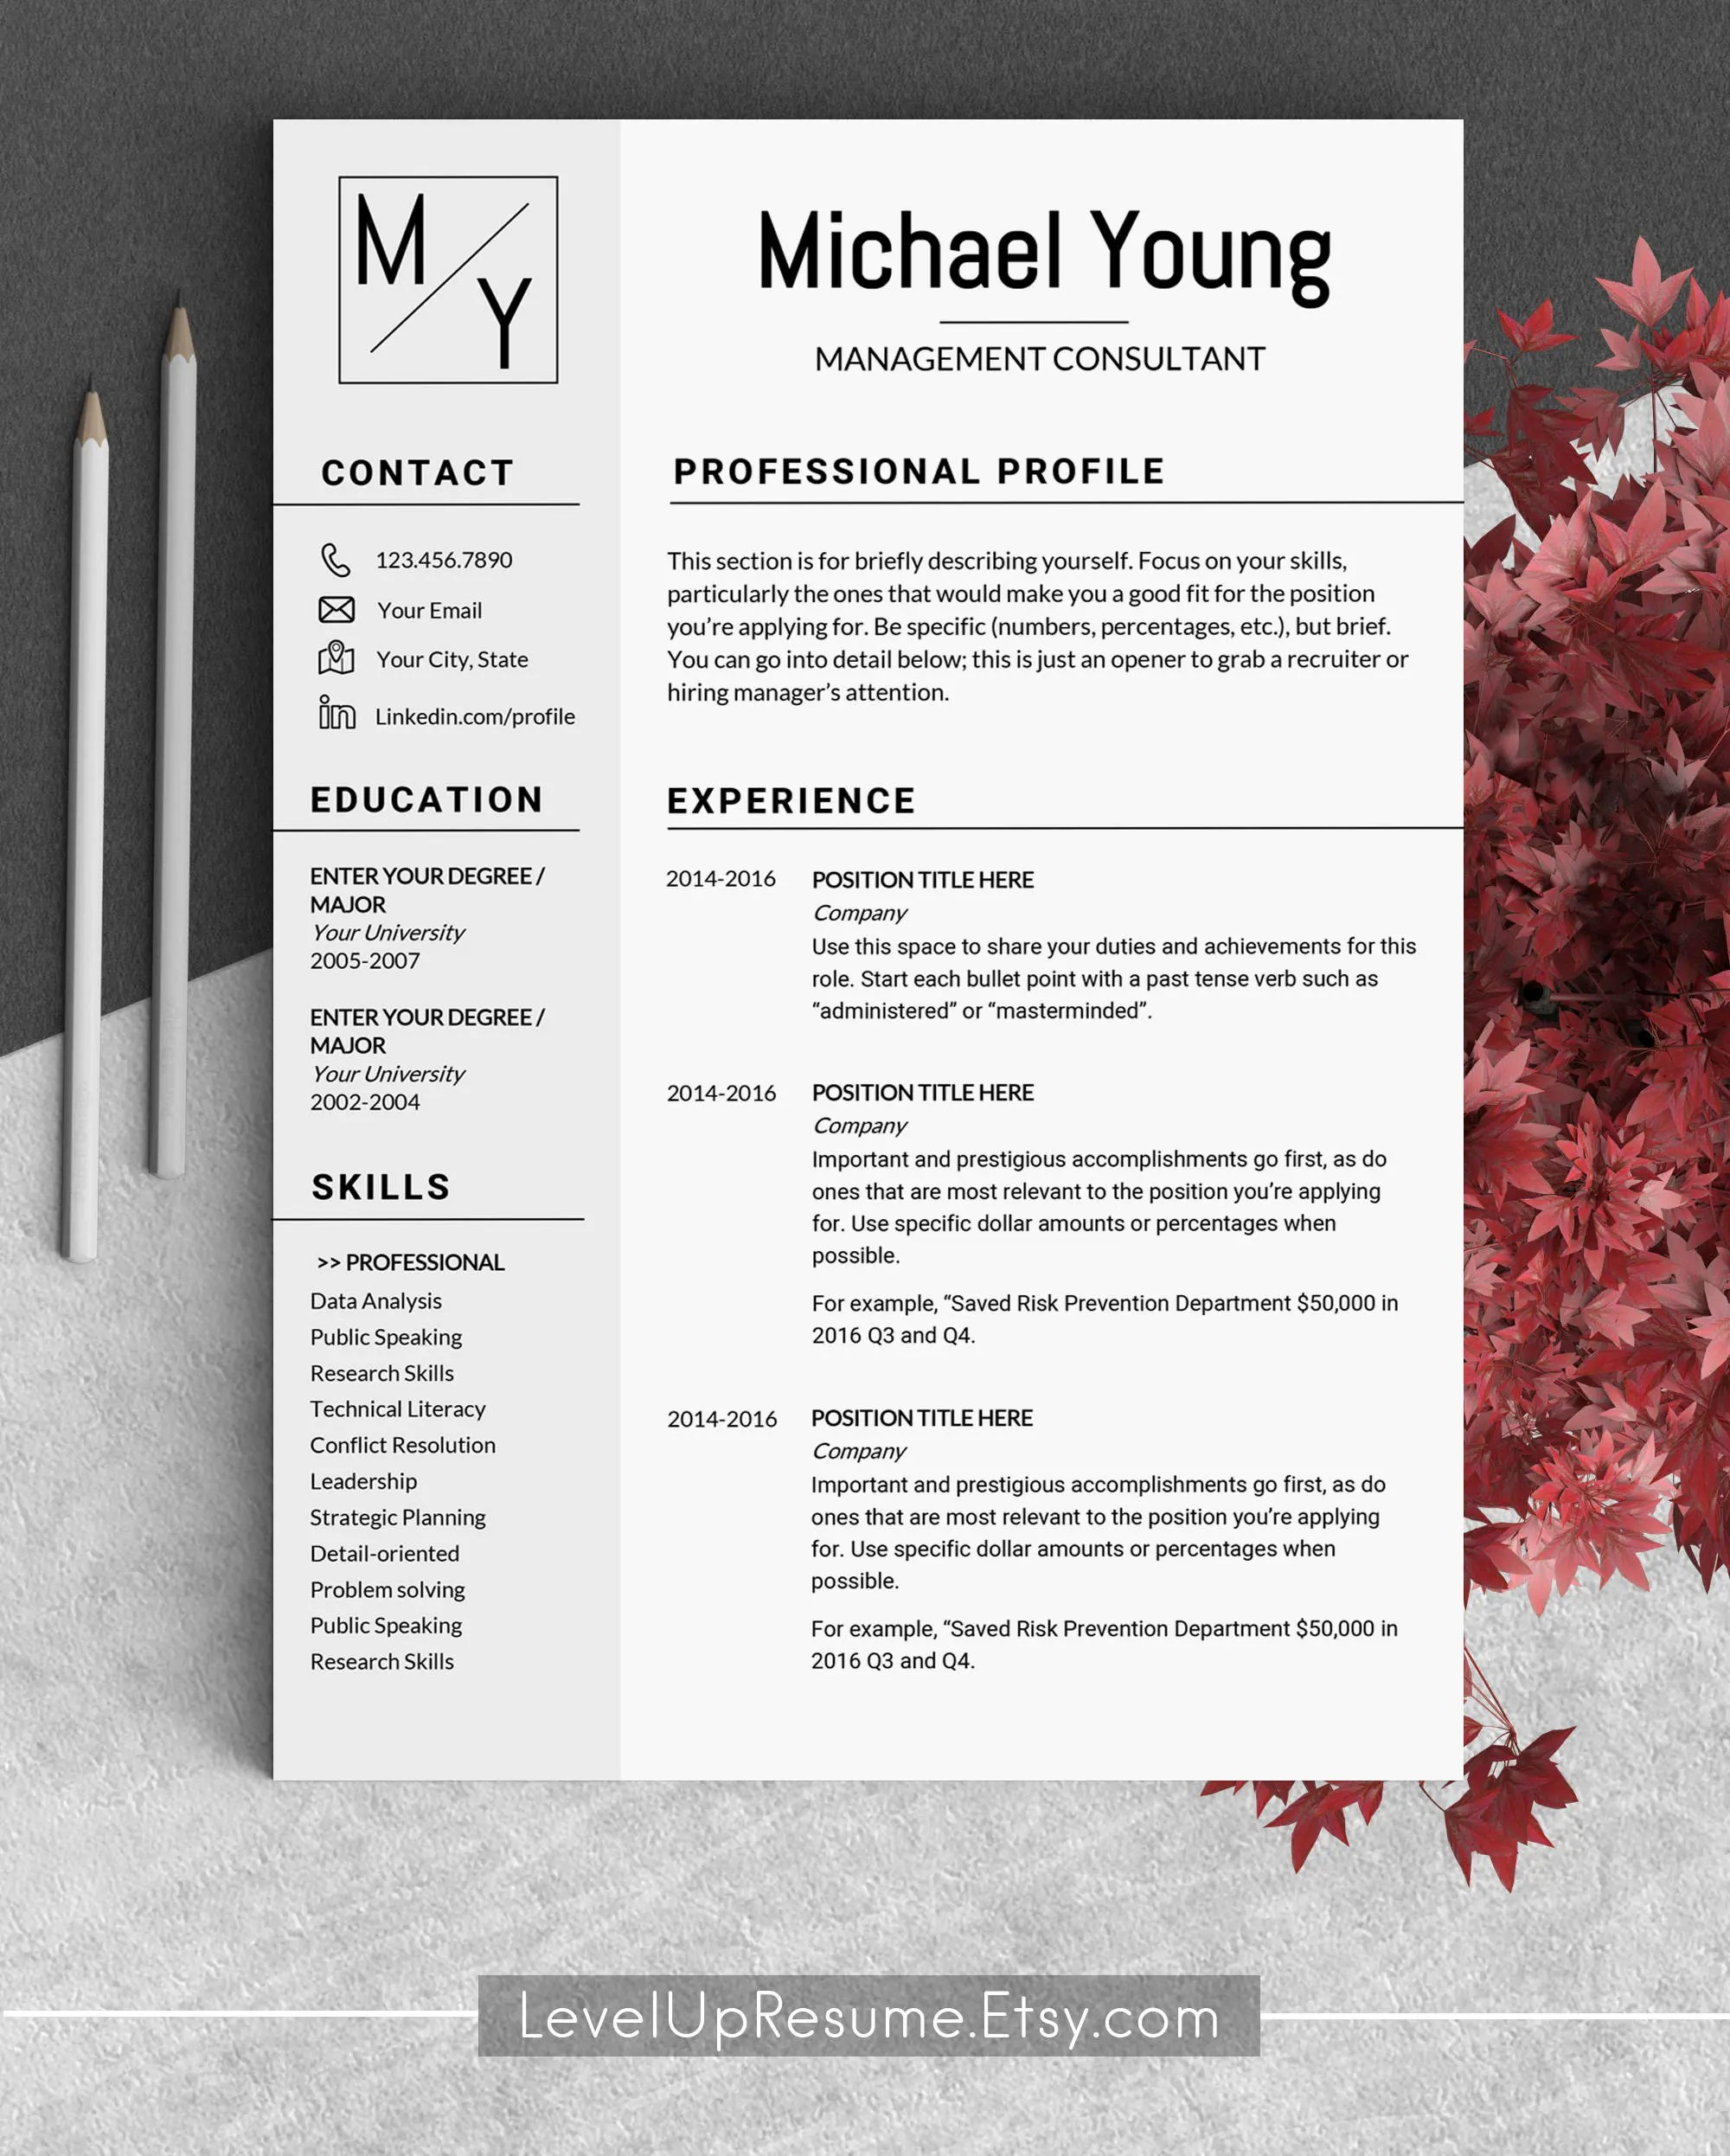 Resume template instant download Cv template Marketing resume Etsy